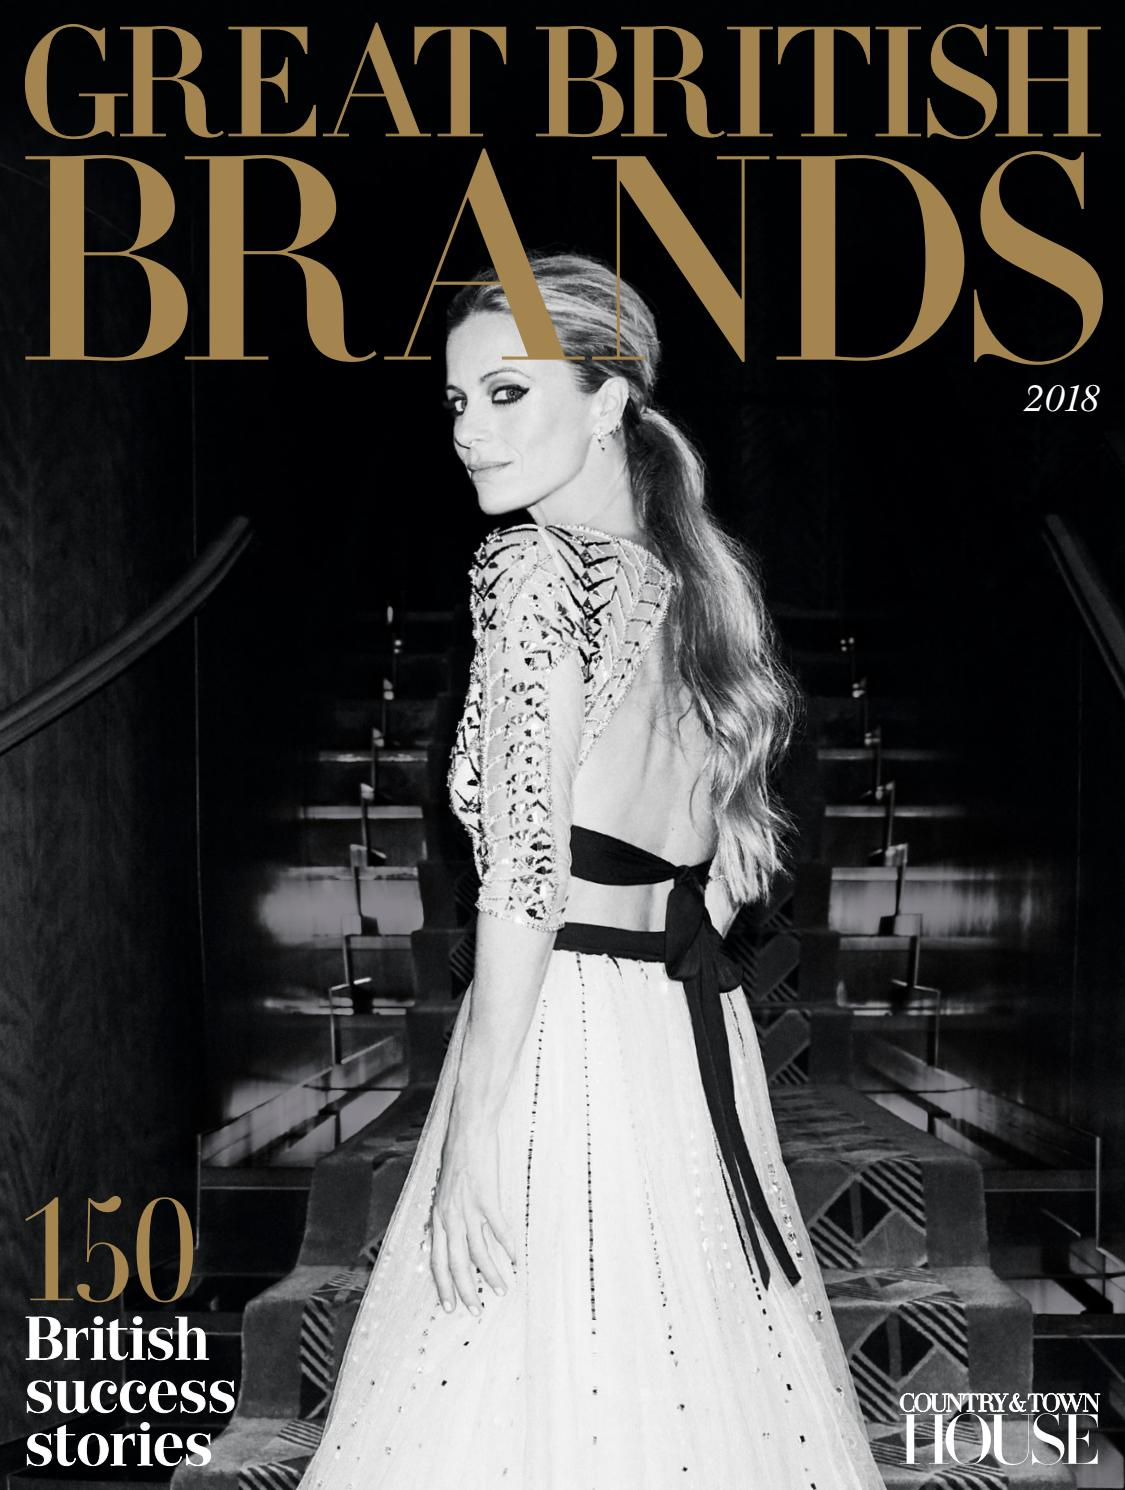 Great British Brands 2018 by Country   Town House Magazine - issuu 0b9684edf